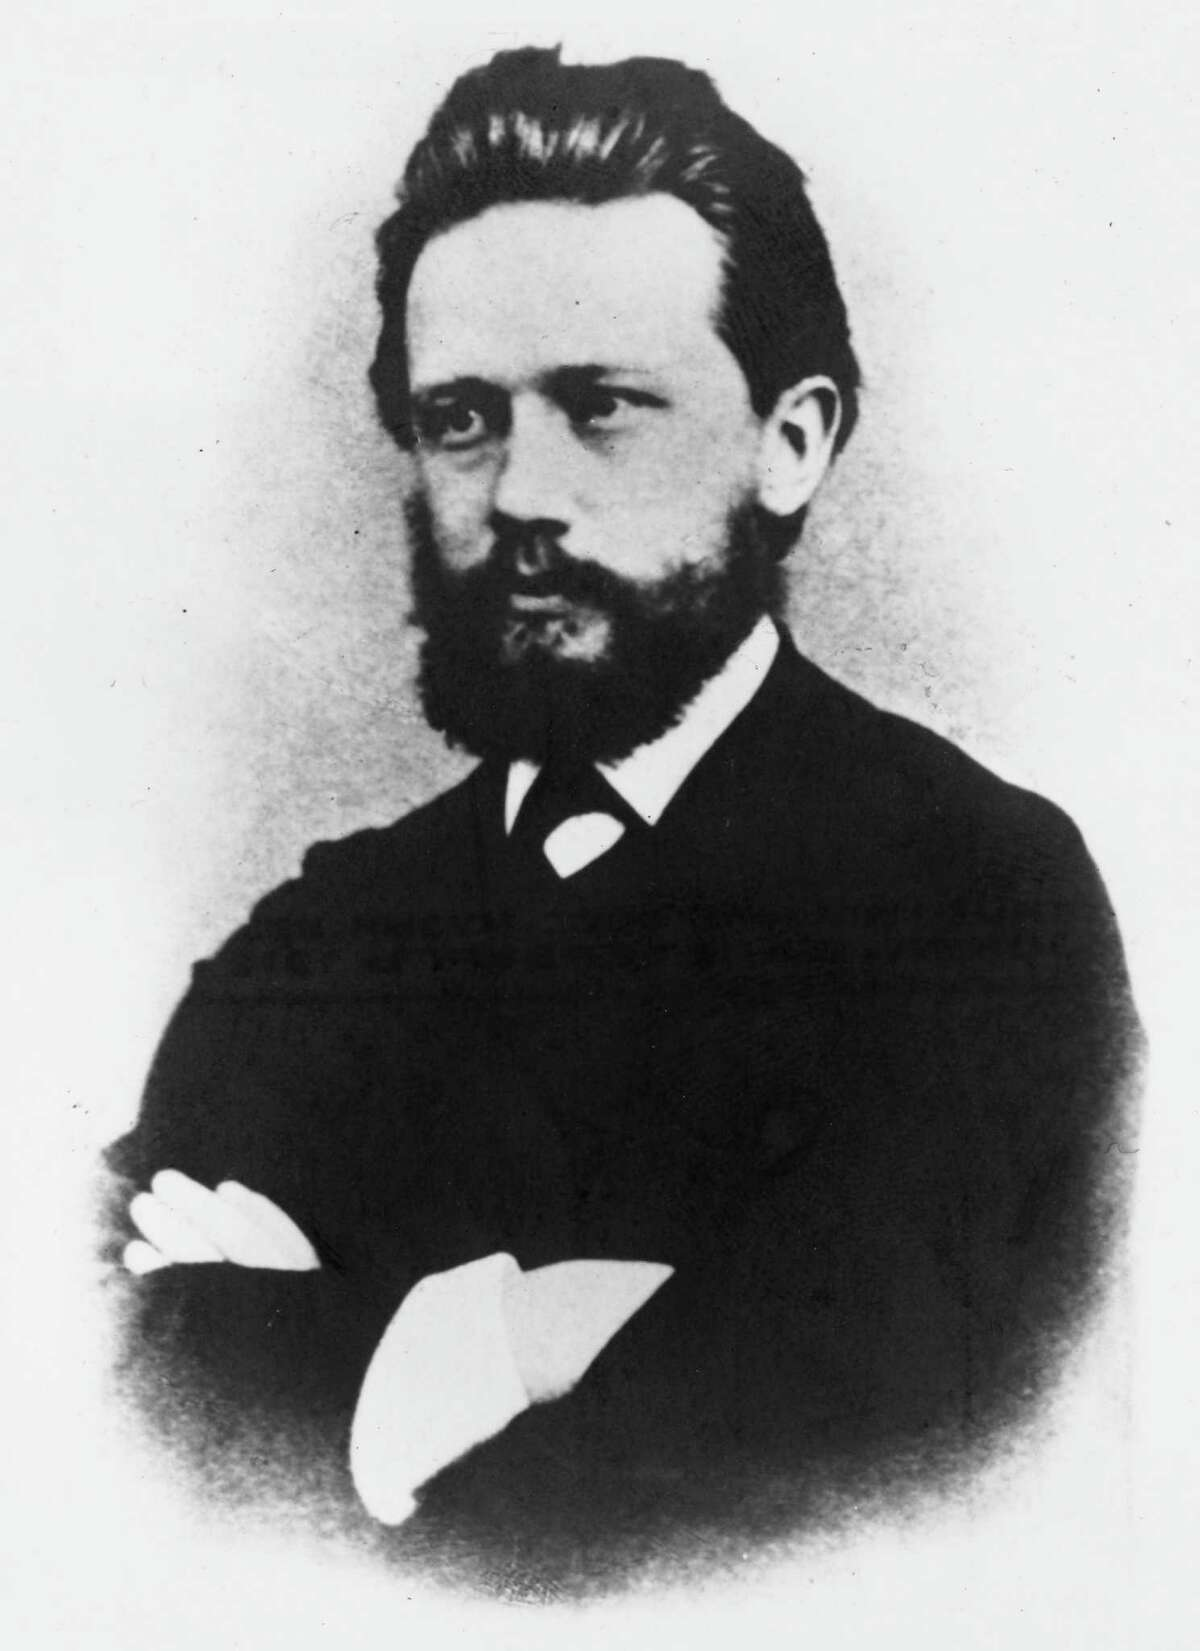 circa 1890: Russian composer Piotr Ilyich Tchaikovsky (1840 - 1893). (Photo by Hulton Archive/Getty Images)By: Hulton ArchiveCollection: Hulton ArchivePeople: Piotr Ilyich Tchaikovsky